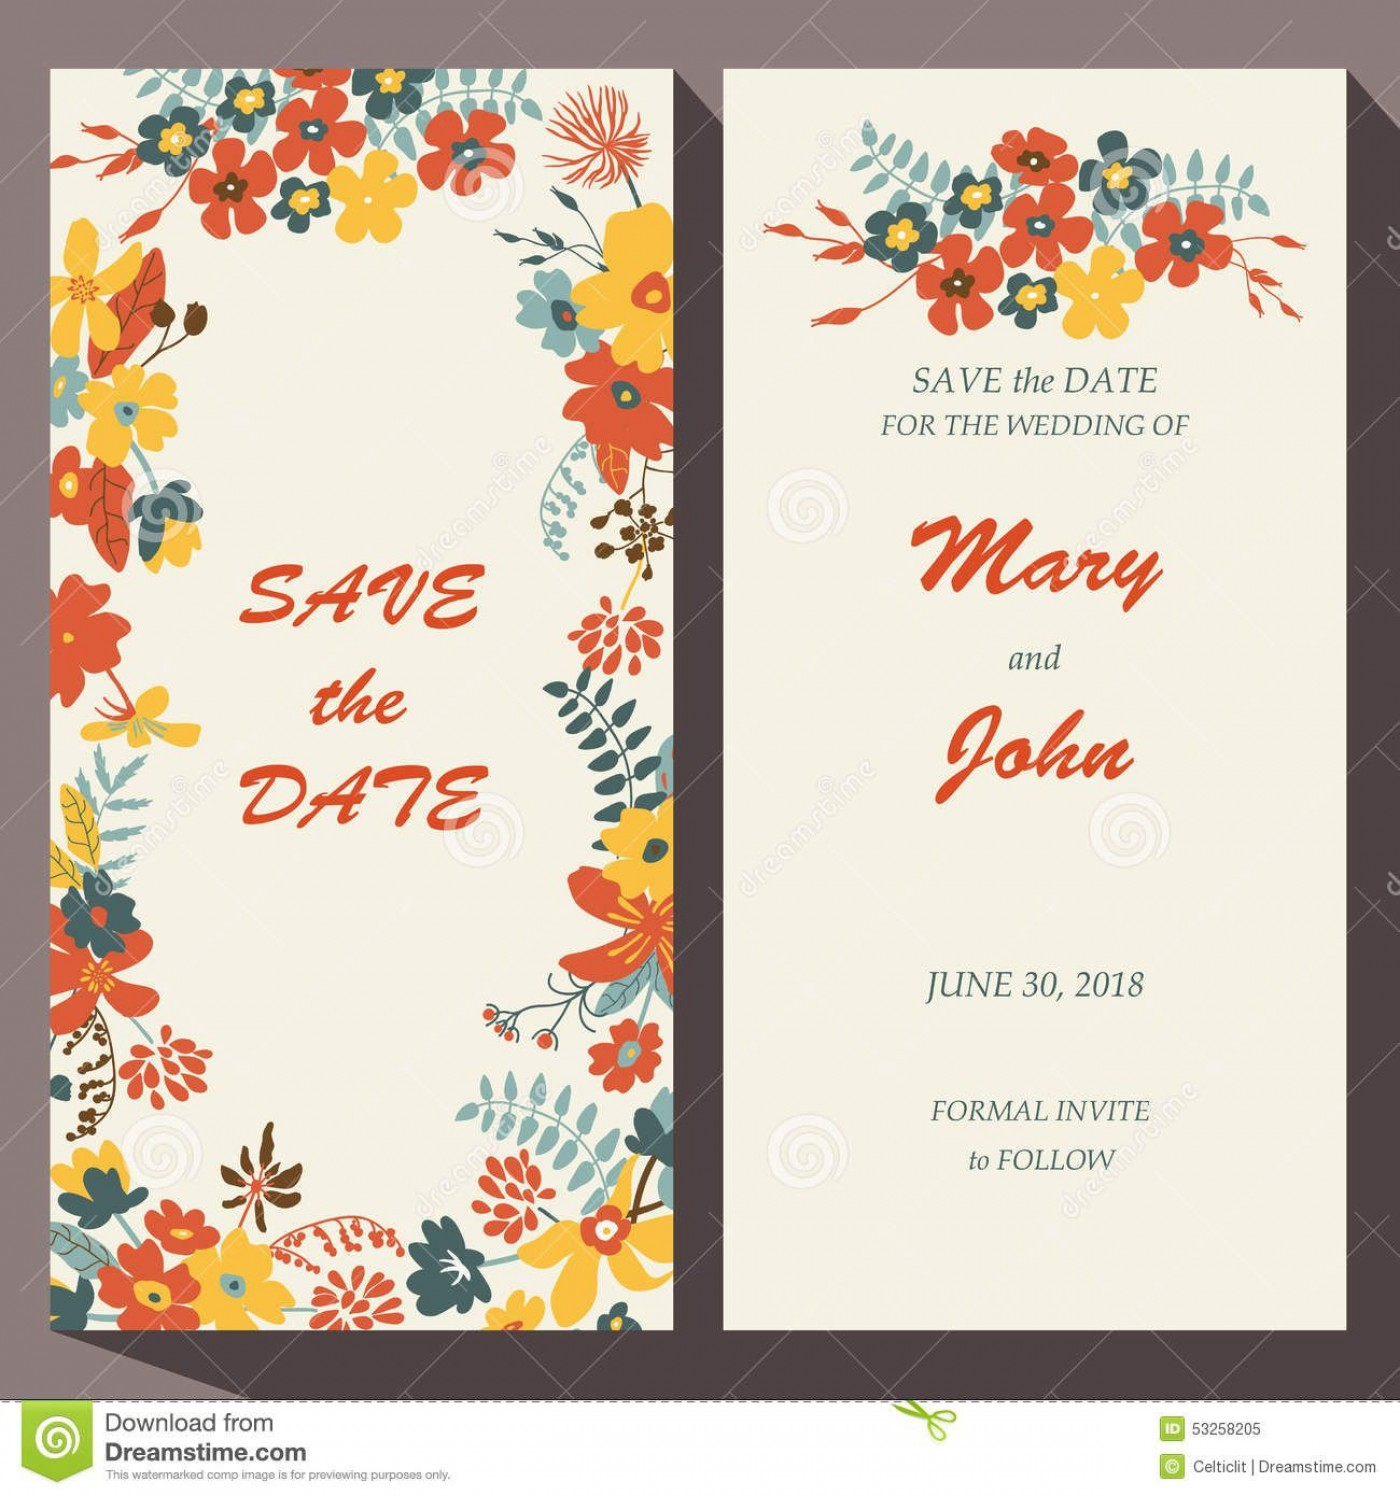 008 Fascinating Save The Date Birthday Card Template High Def  Free Printable1400